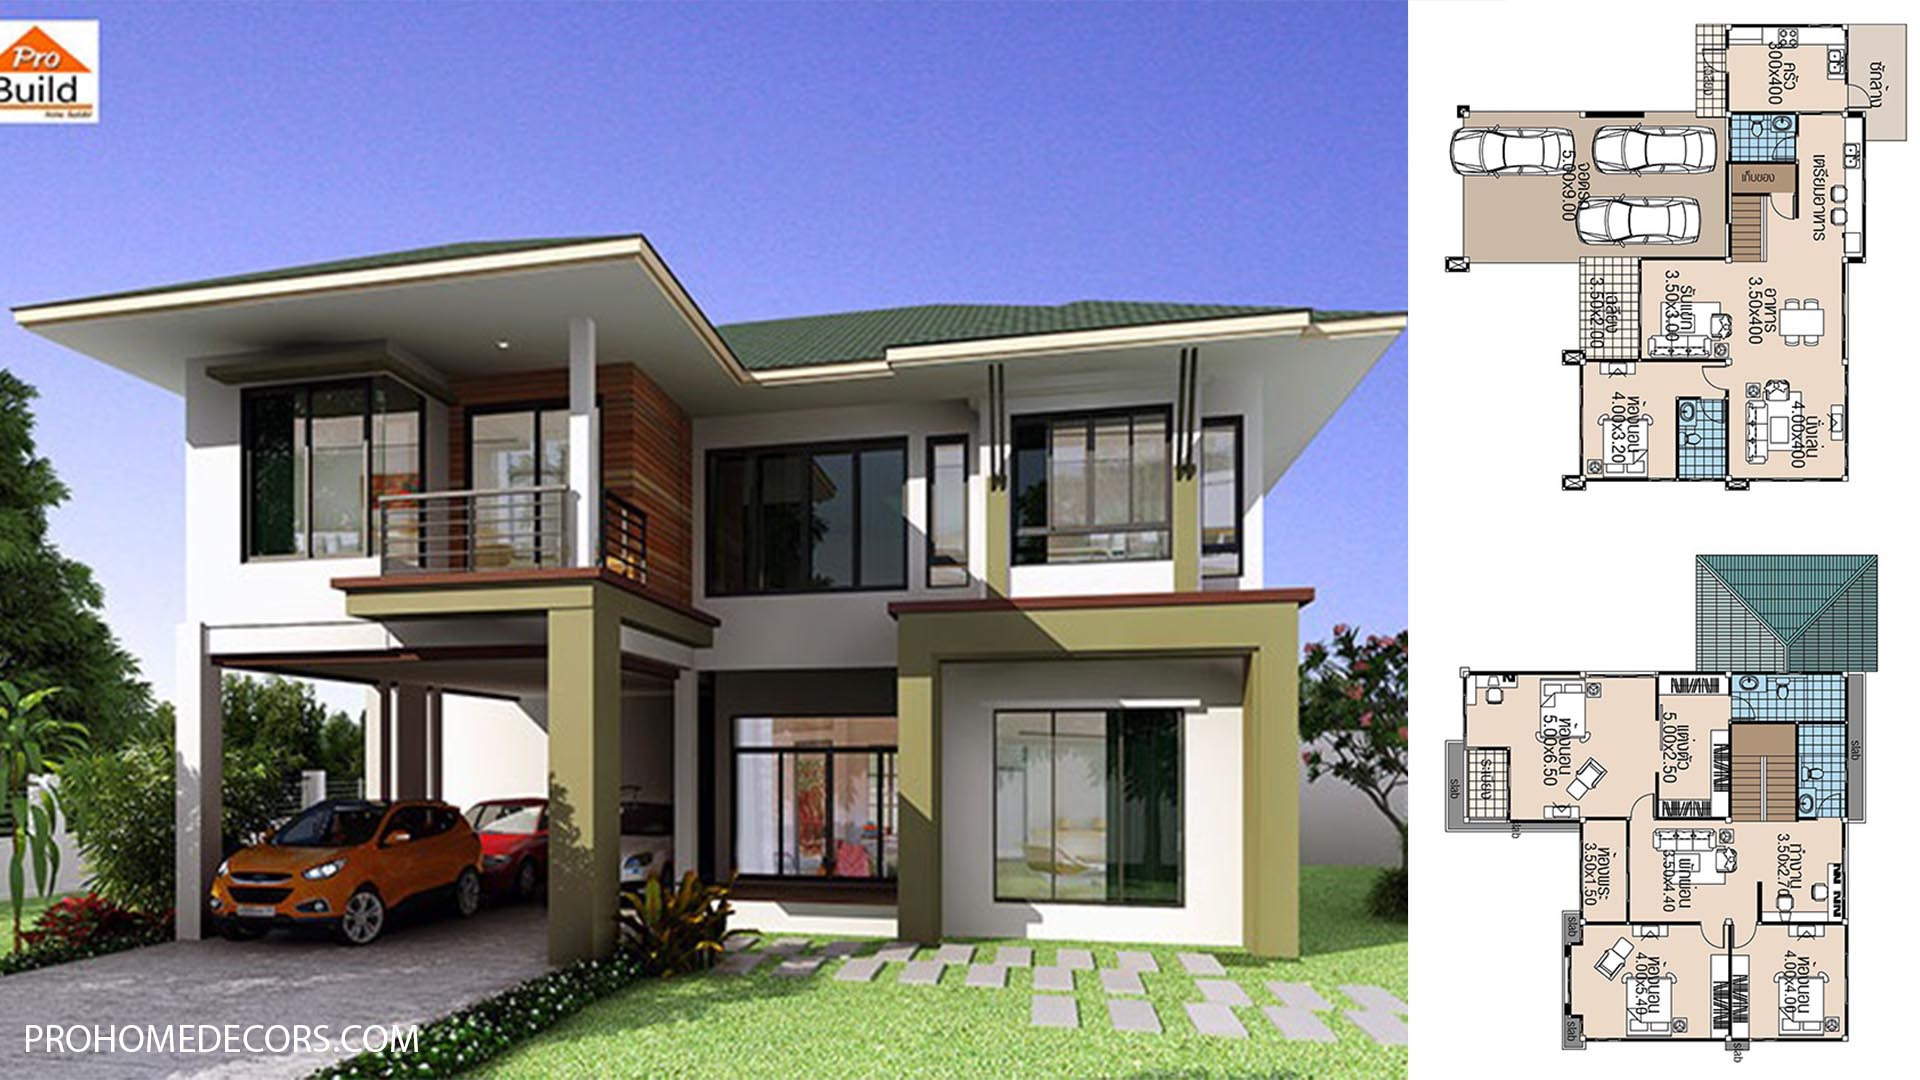 House plans 15.5×13 with 4 Beds